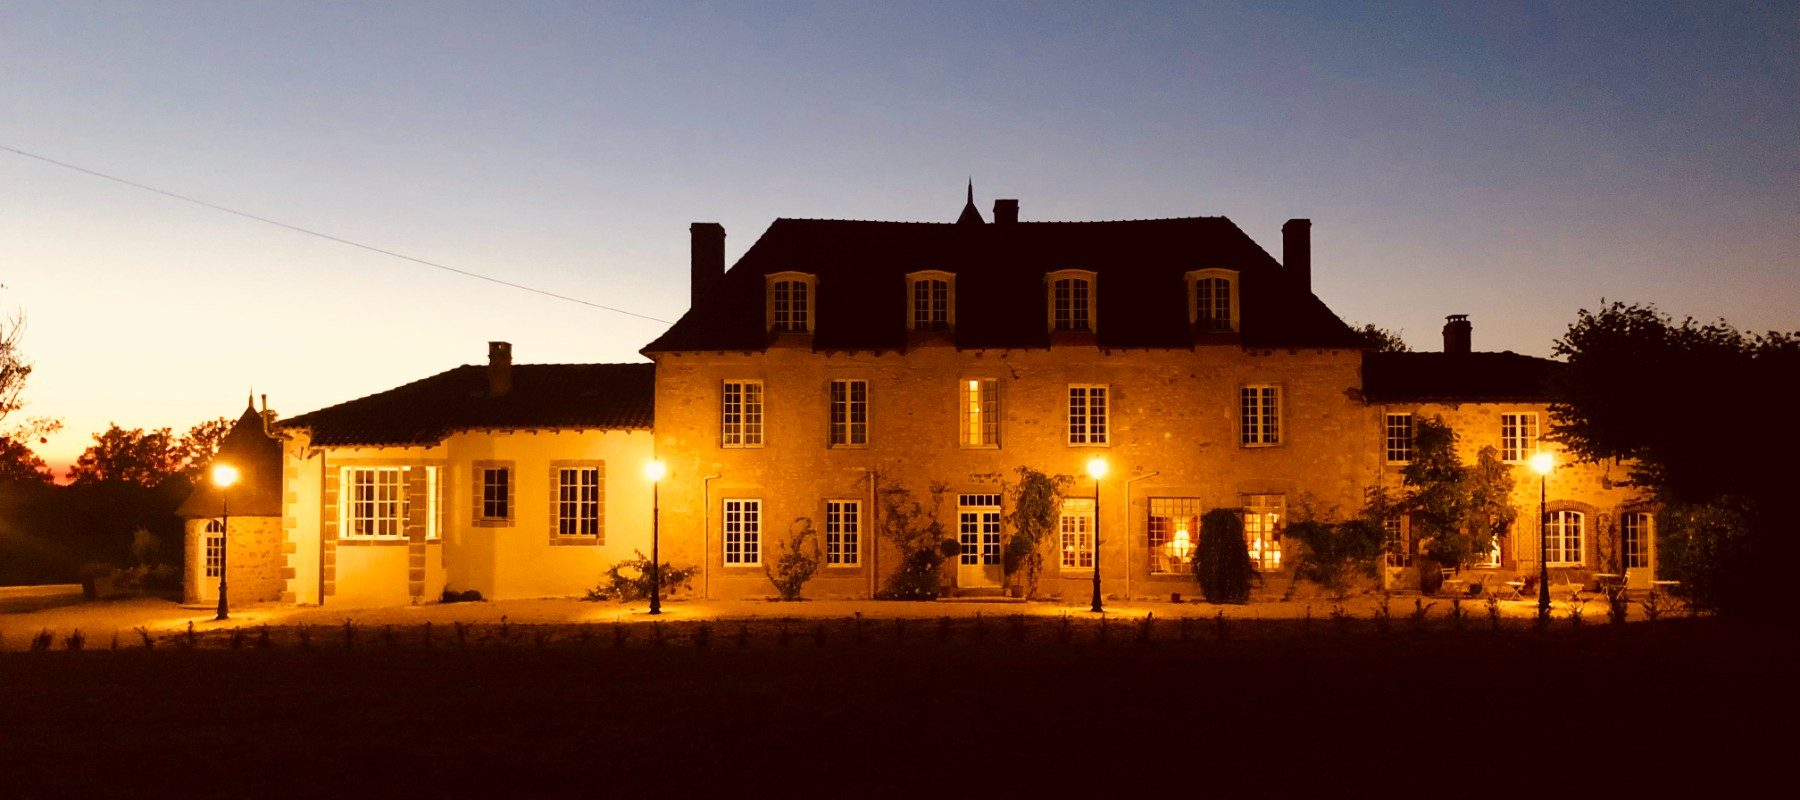 Back of Chateau at night